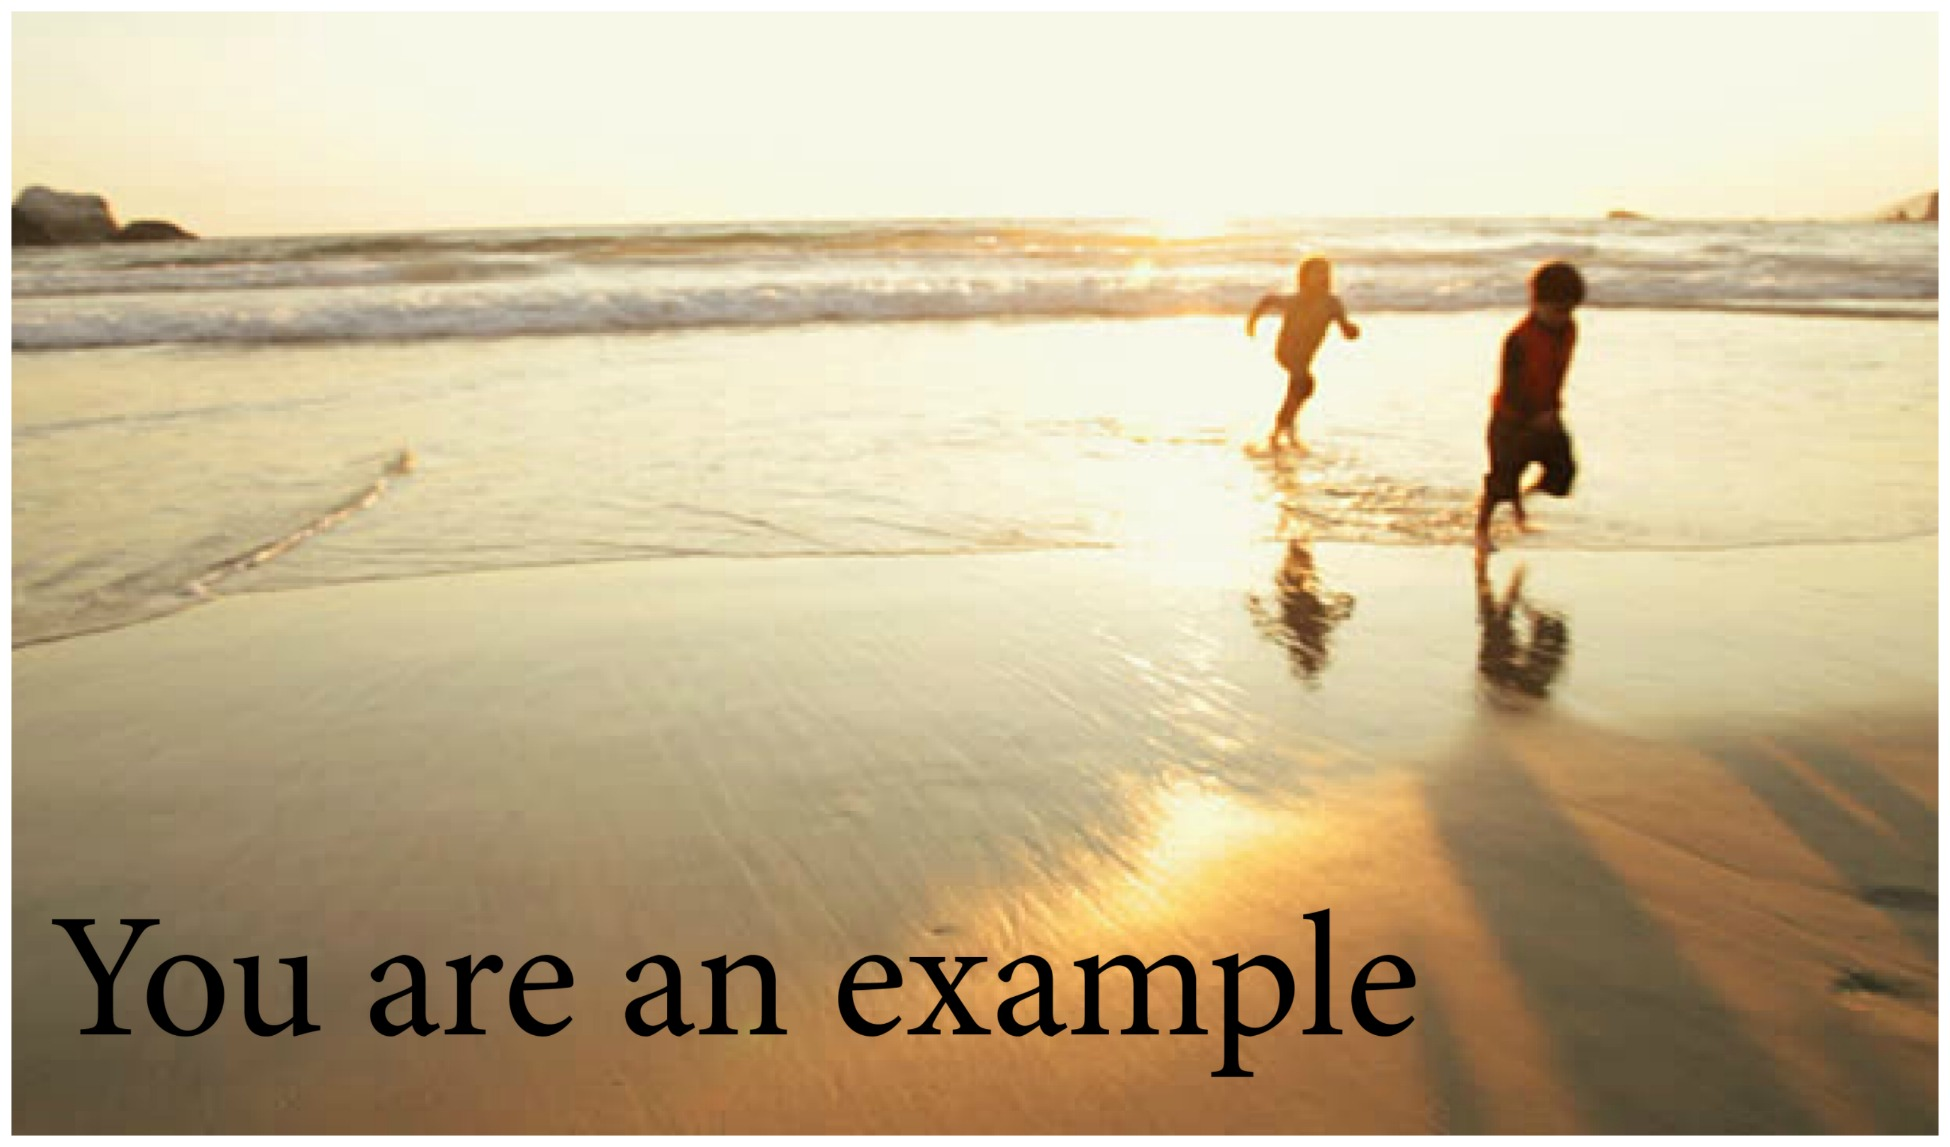 Your power of example is a service to others